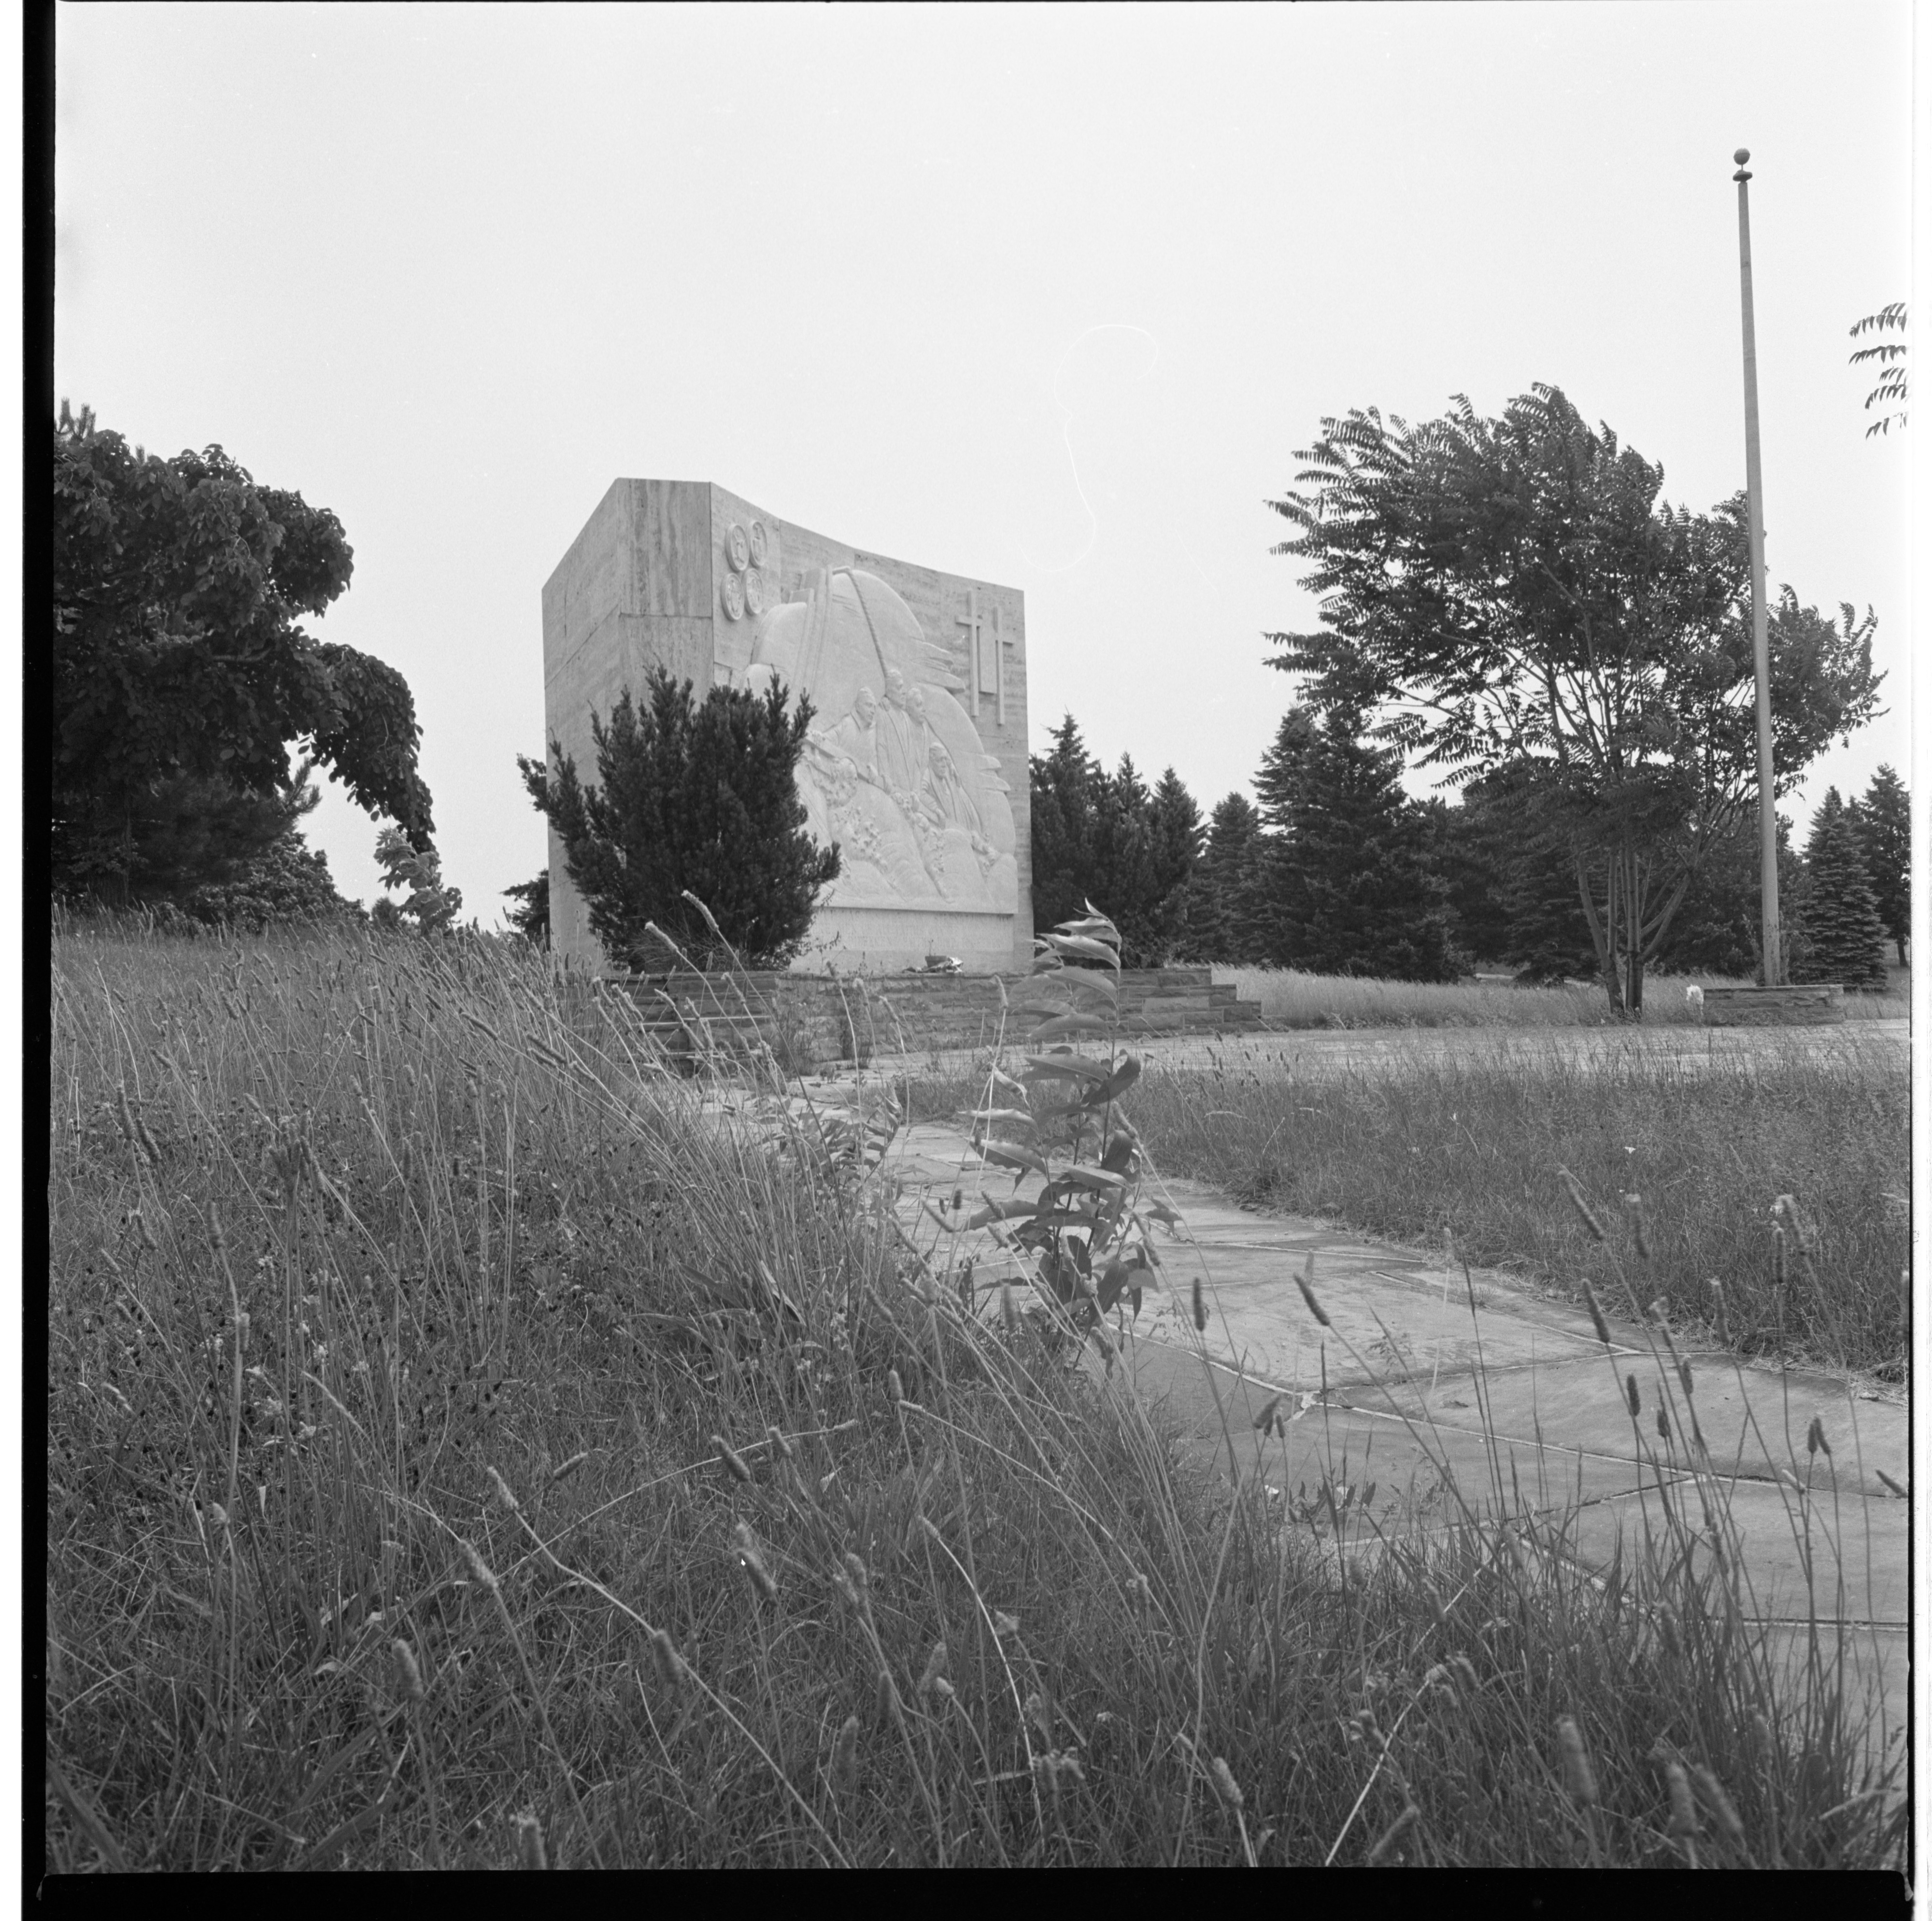 Arborcrest Cemetery's Four Chaplains Monument Surrounded By Weeds, July 1966 image